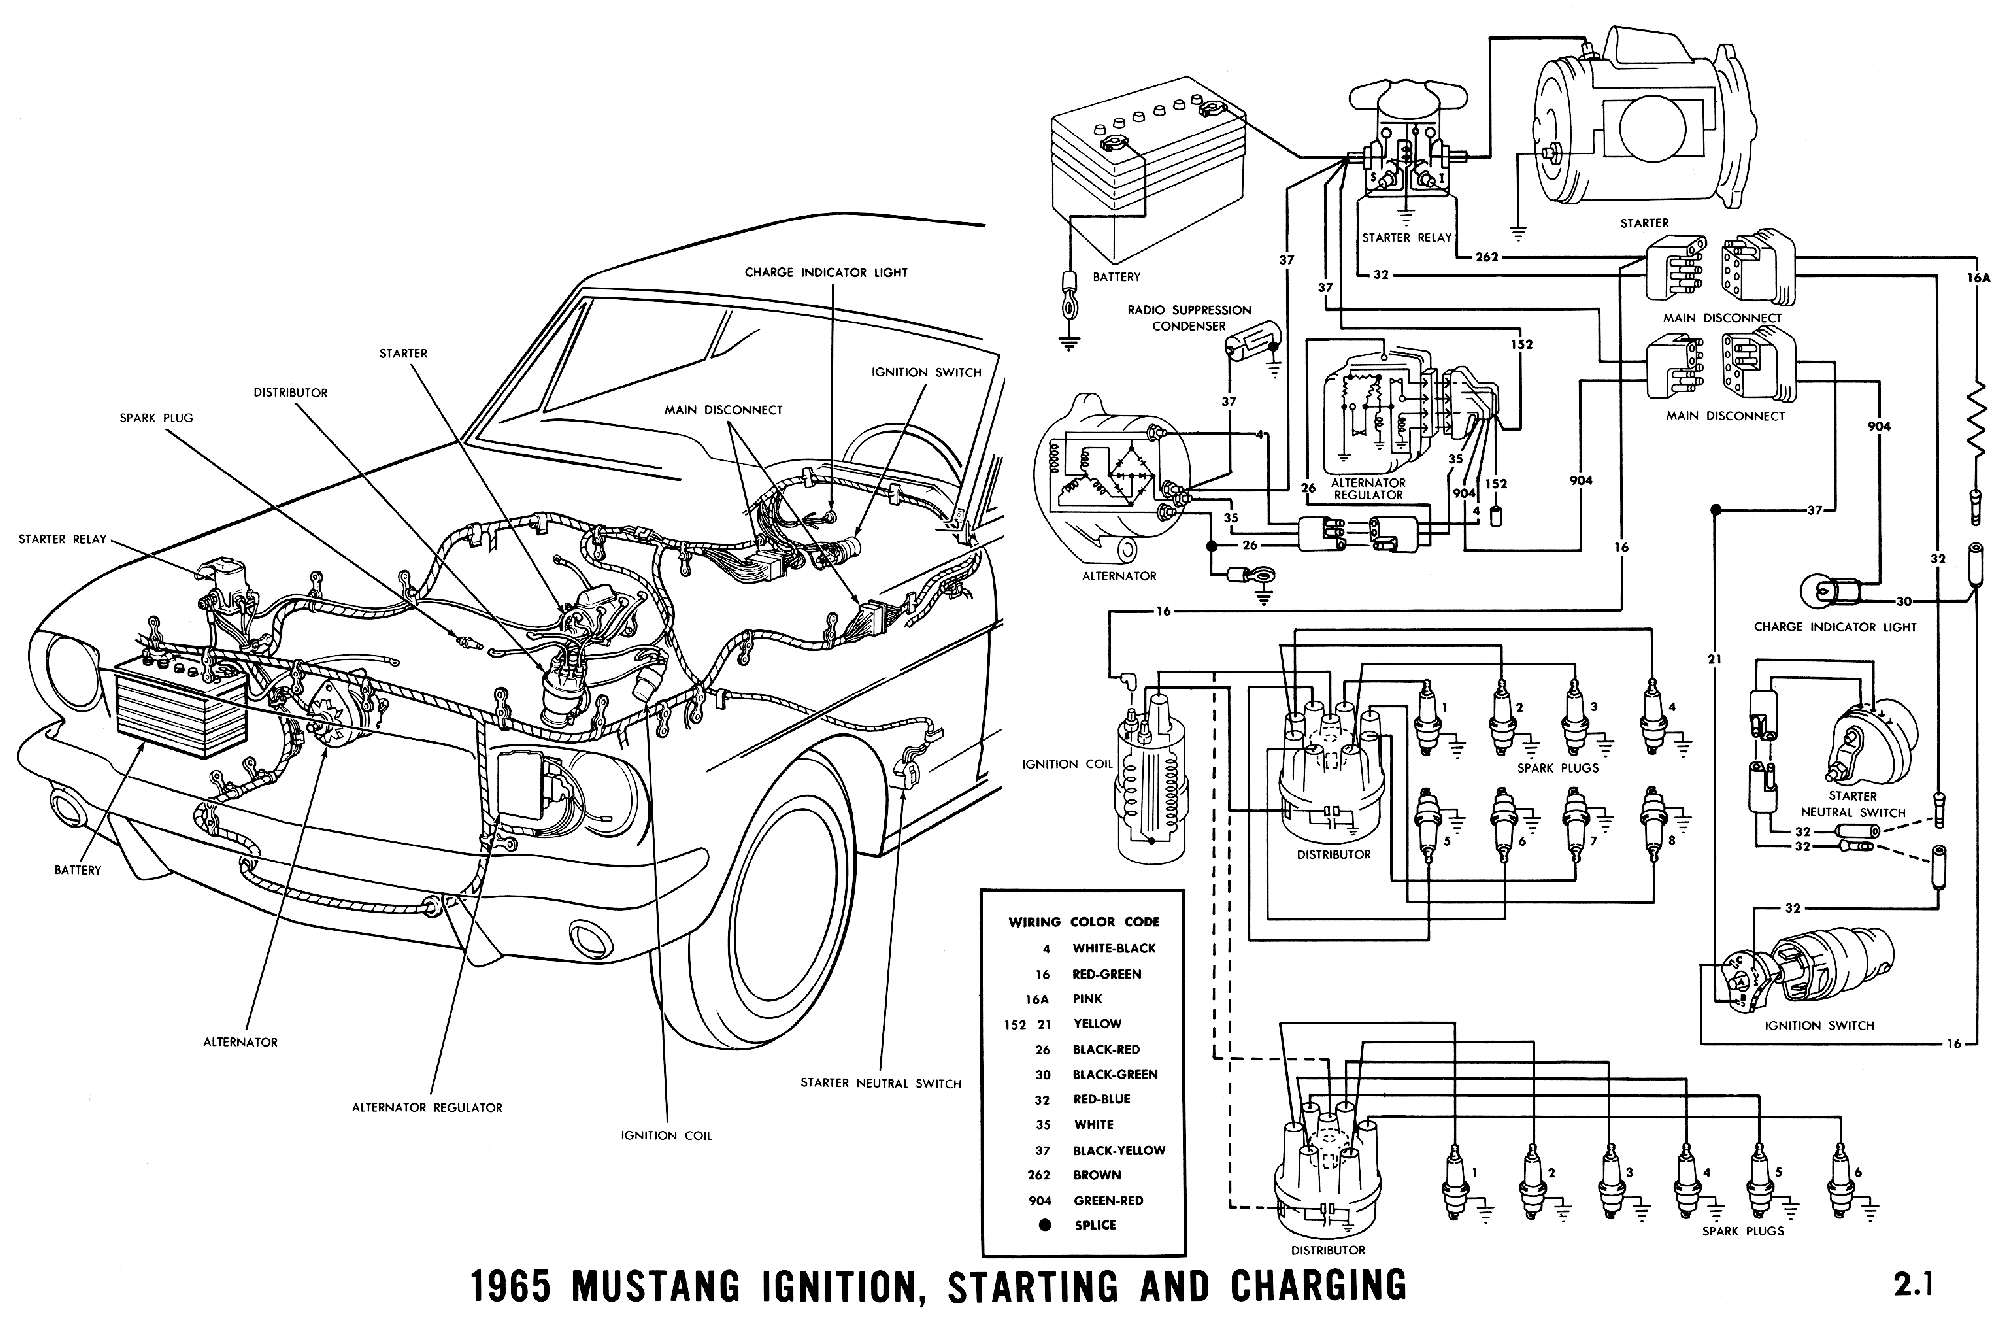 Automotive Car Wiring Diagram Best Diagrams For Cars 2 Library Charging Pictorial And Schematic